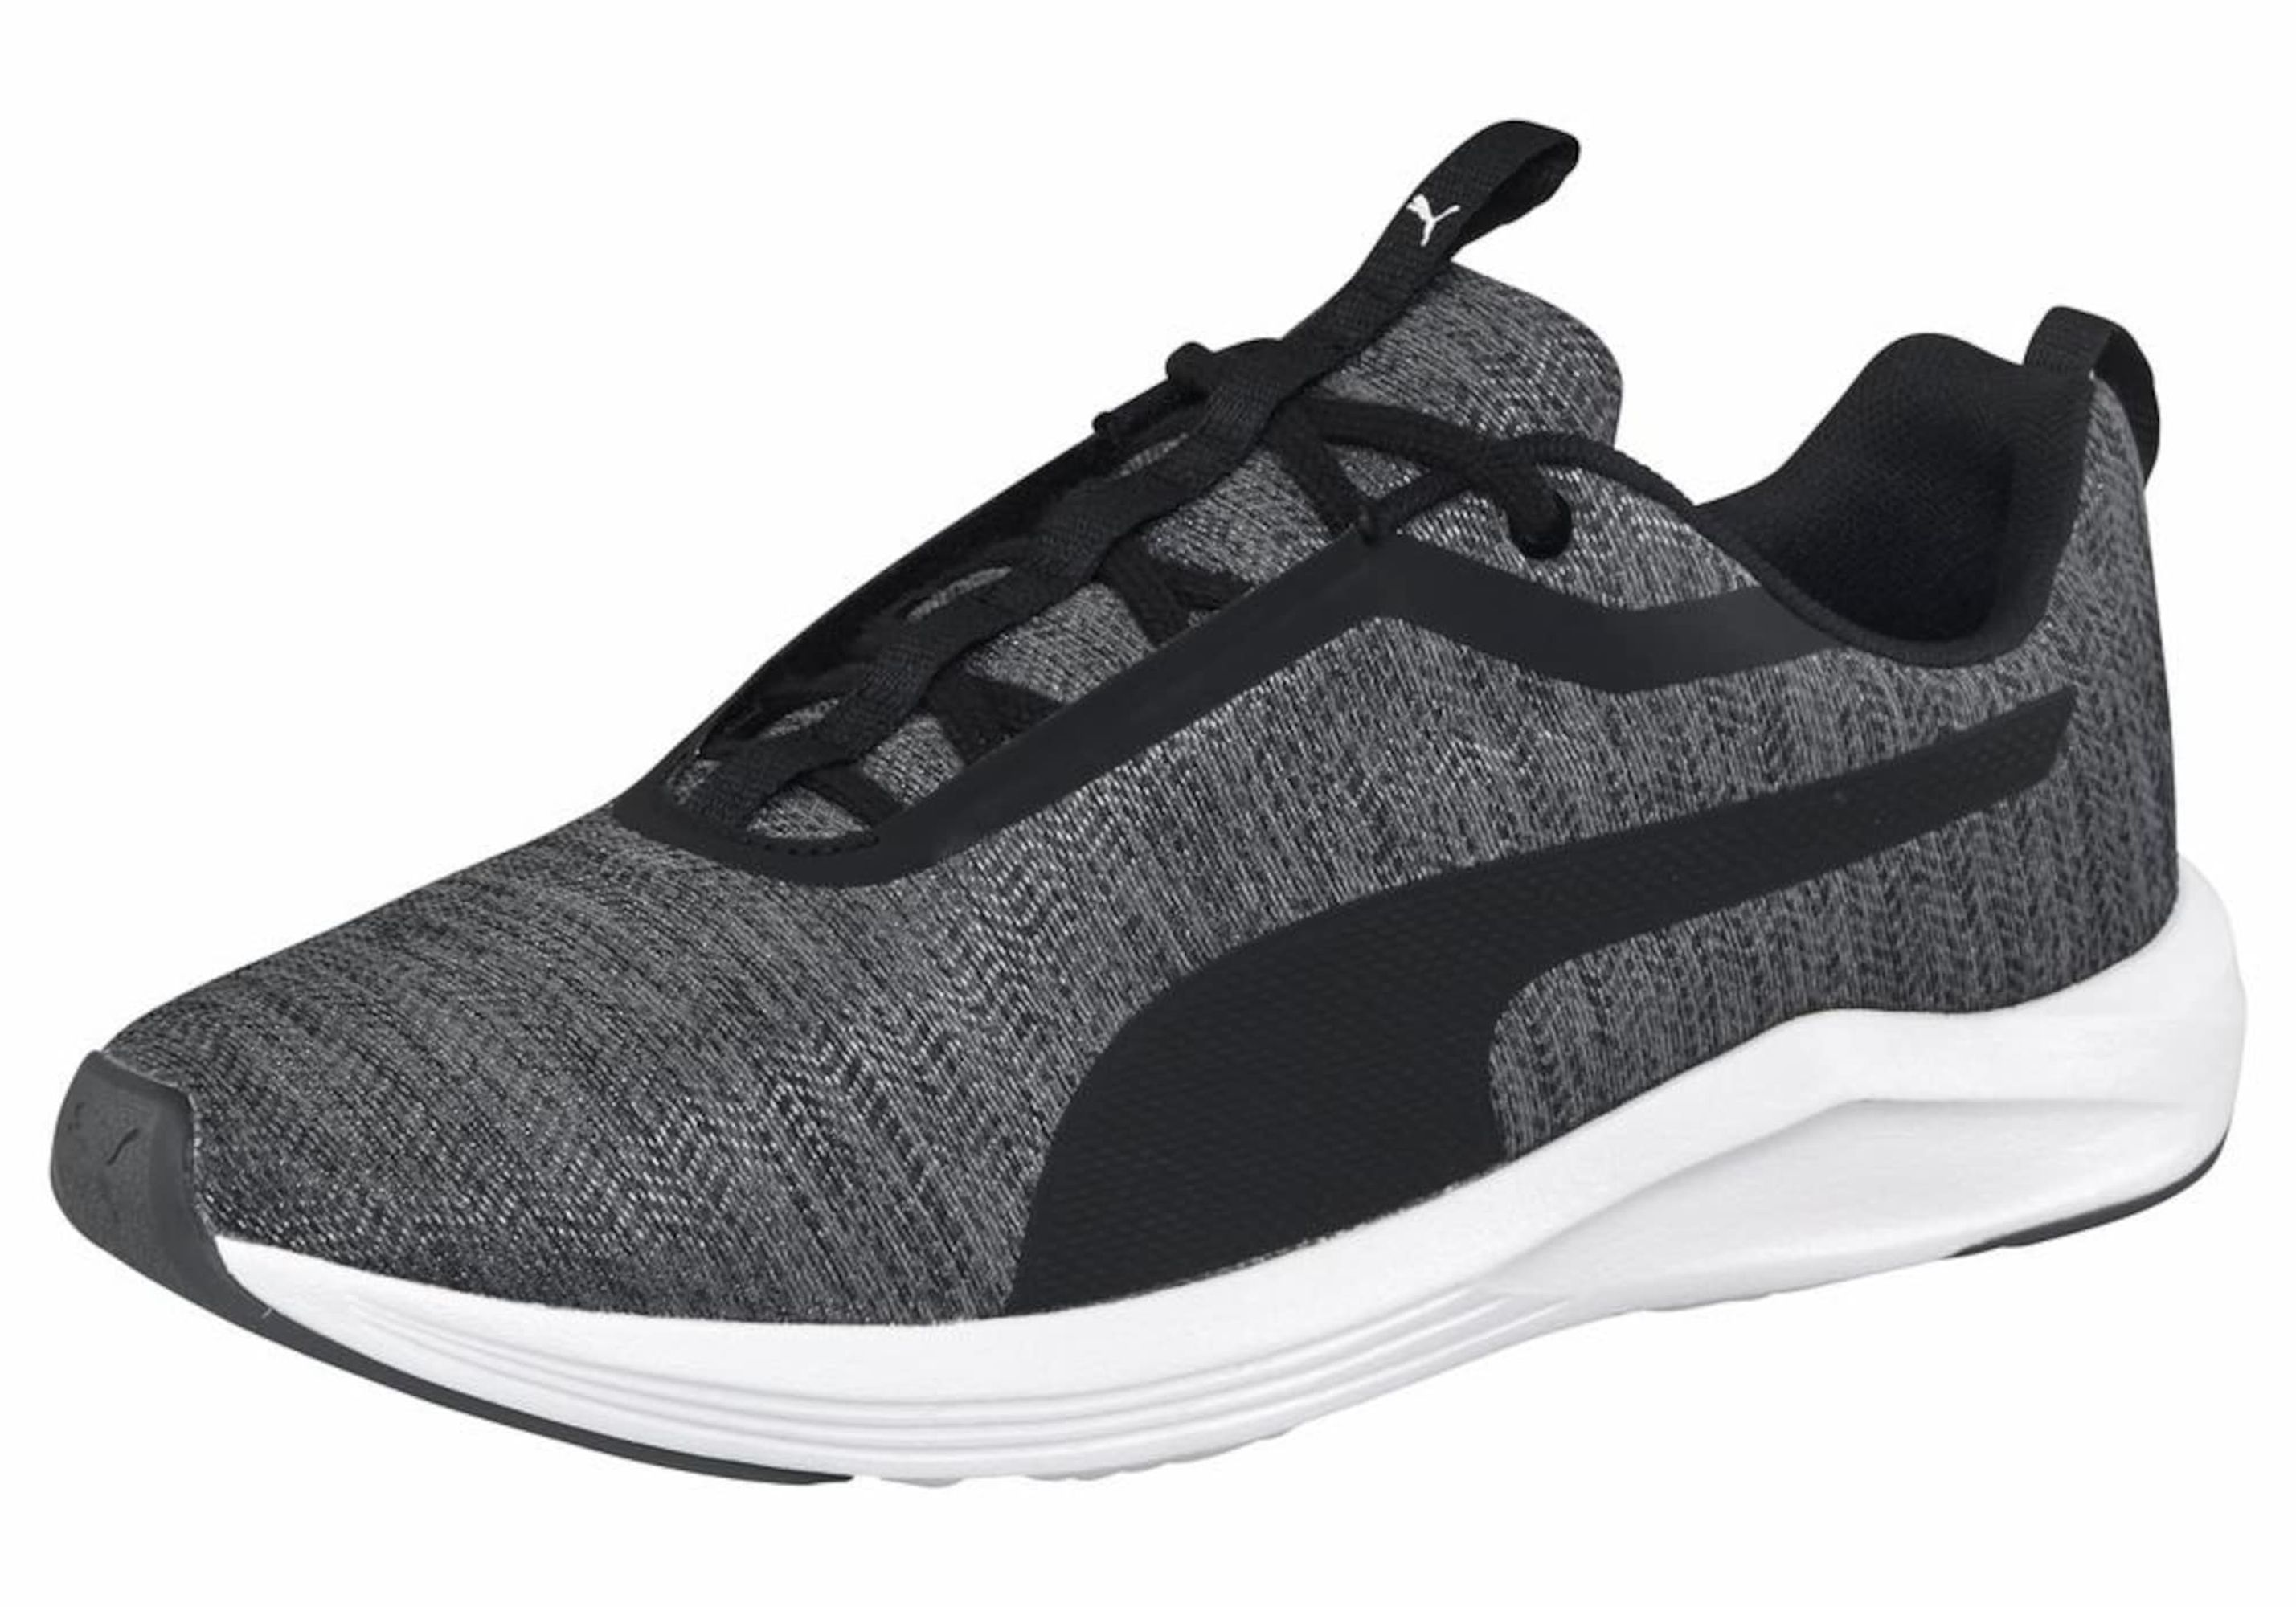 Fitnessschuh ´Prowl Shimmer Womens´